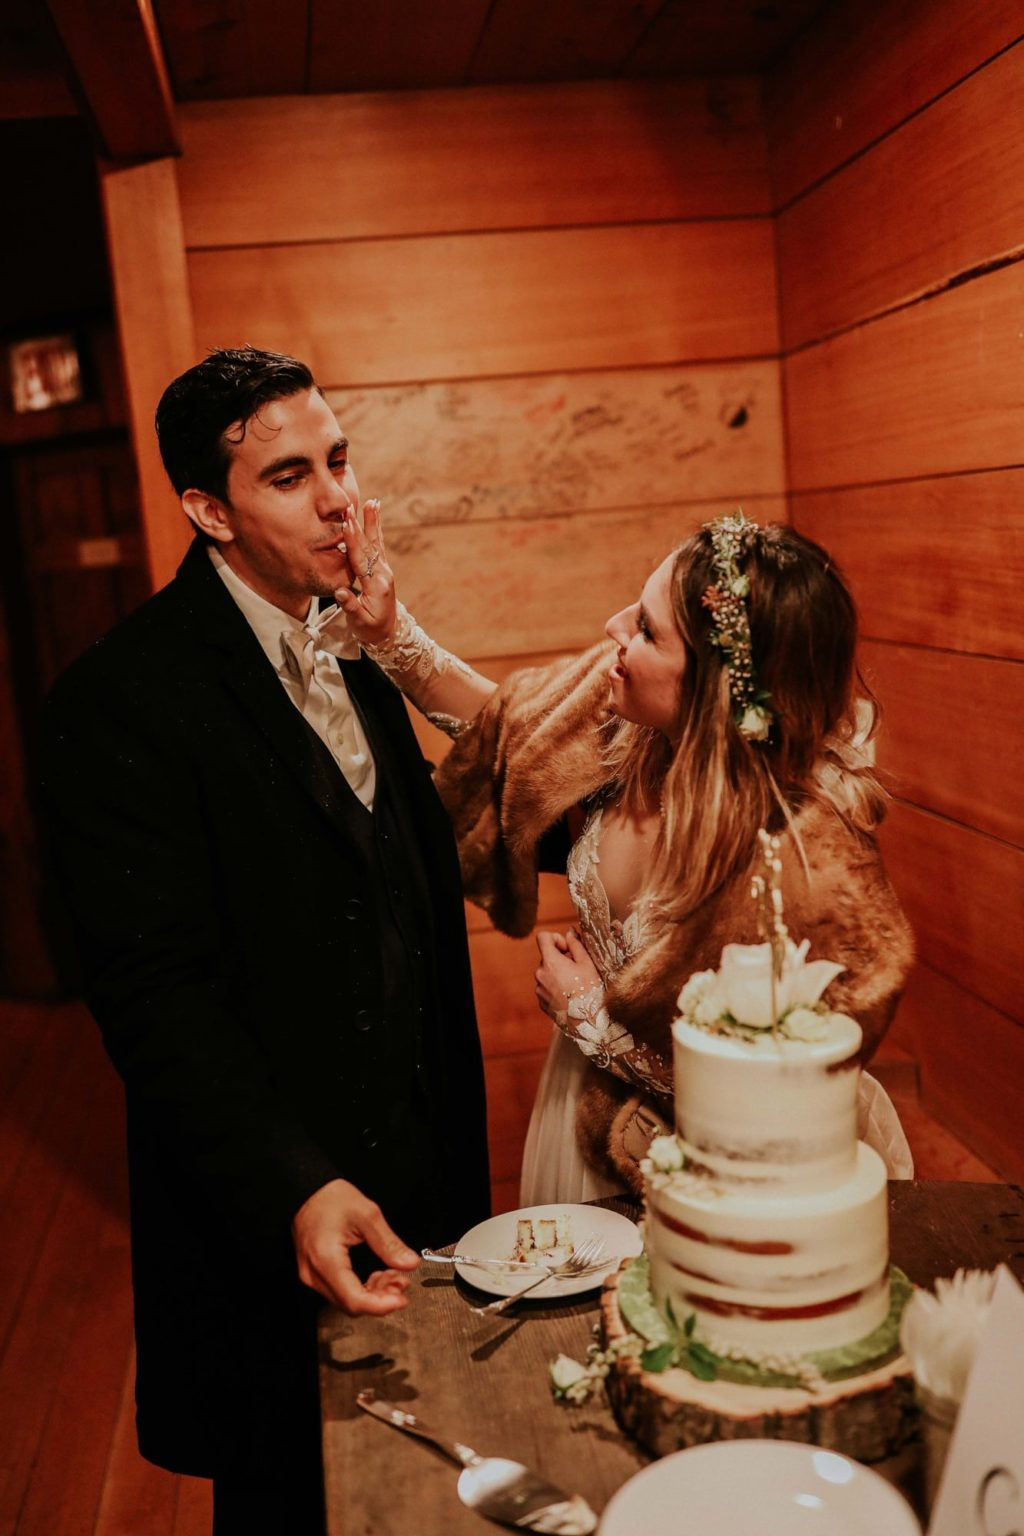 bride wiping cake off groom's face